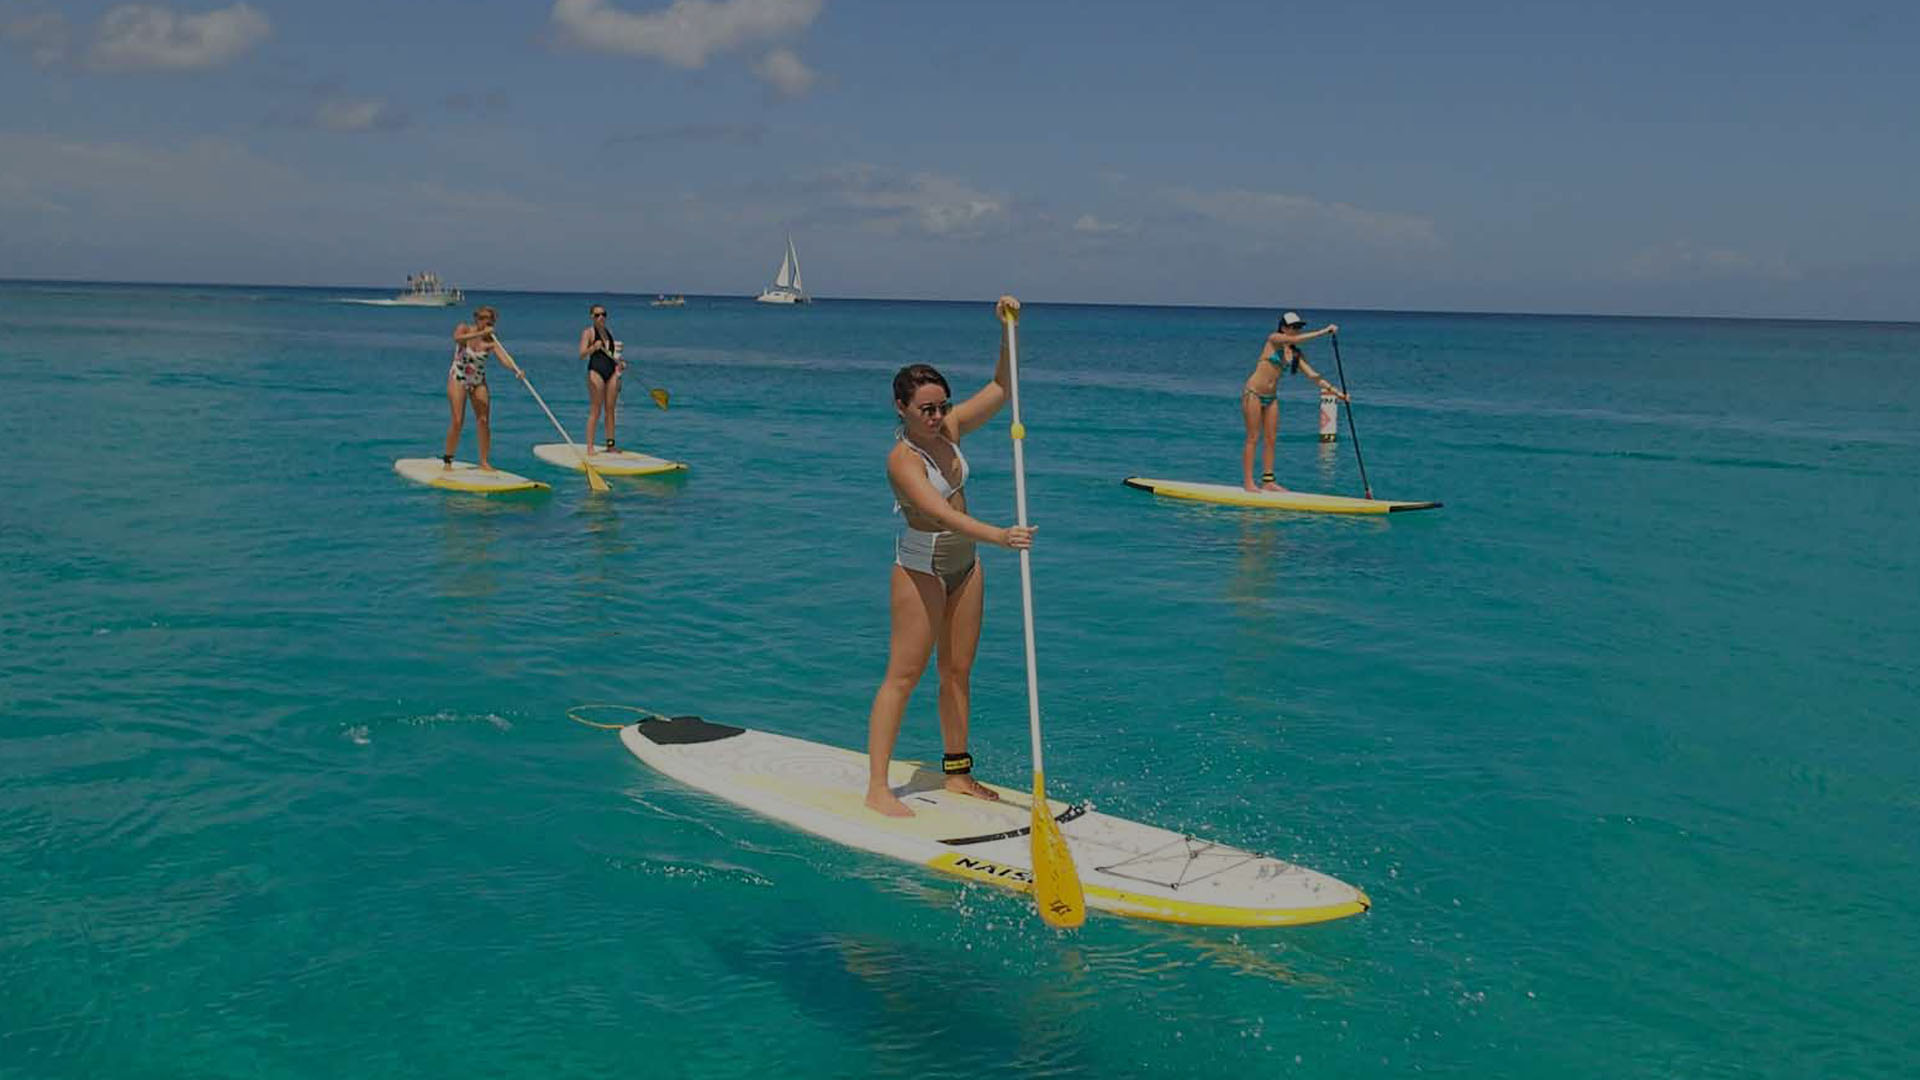 4 paddlers standing on a board in a clear water